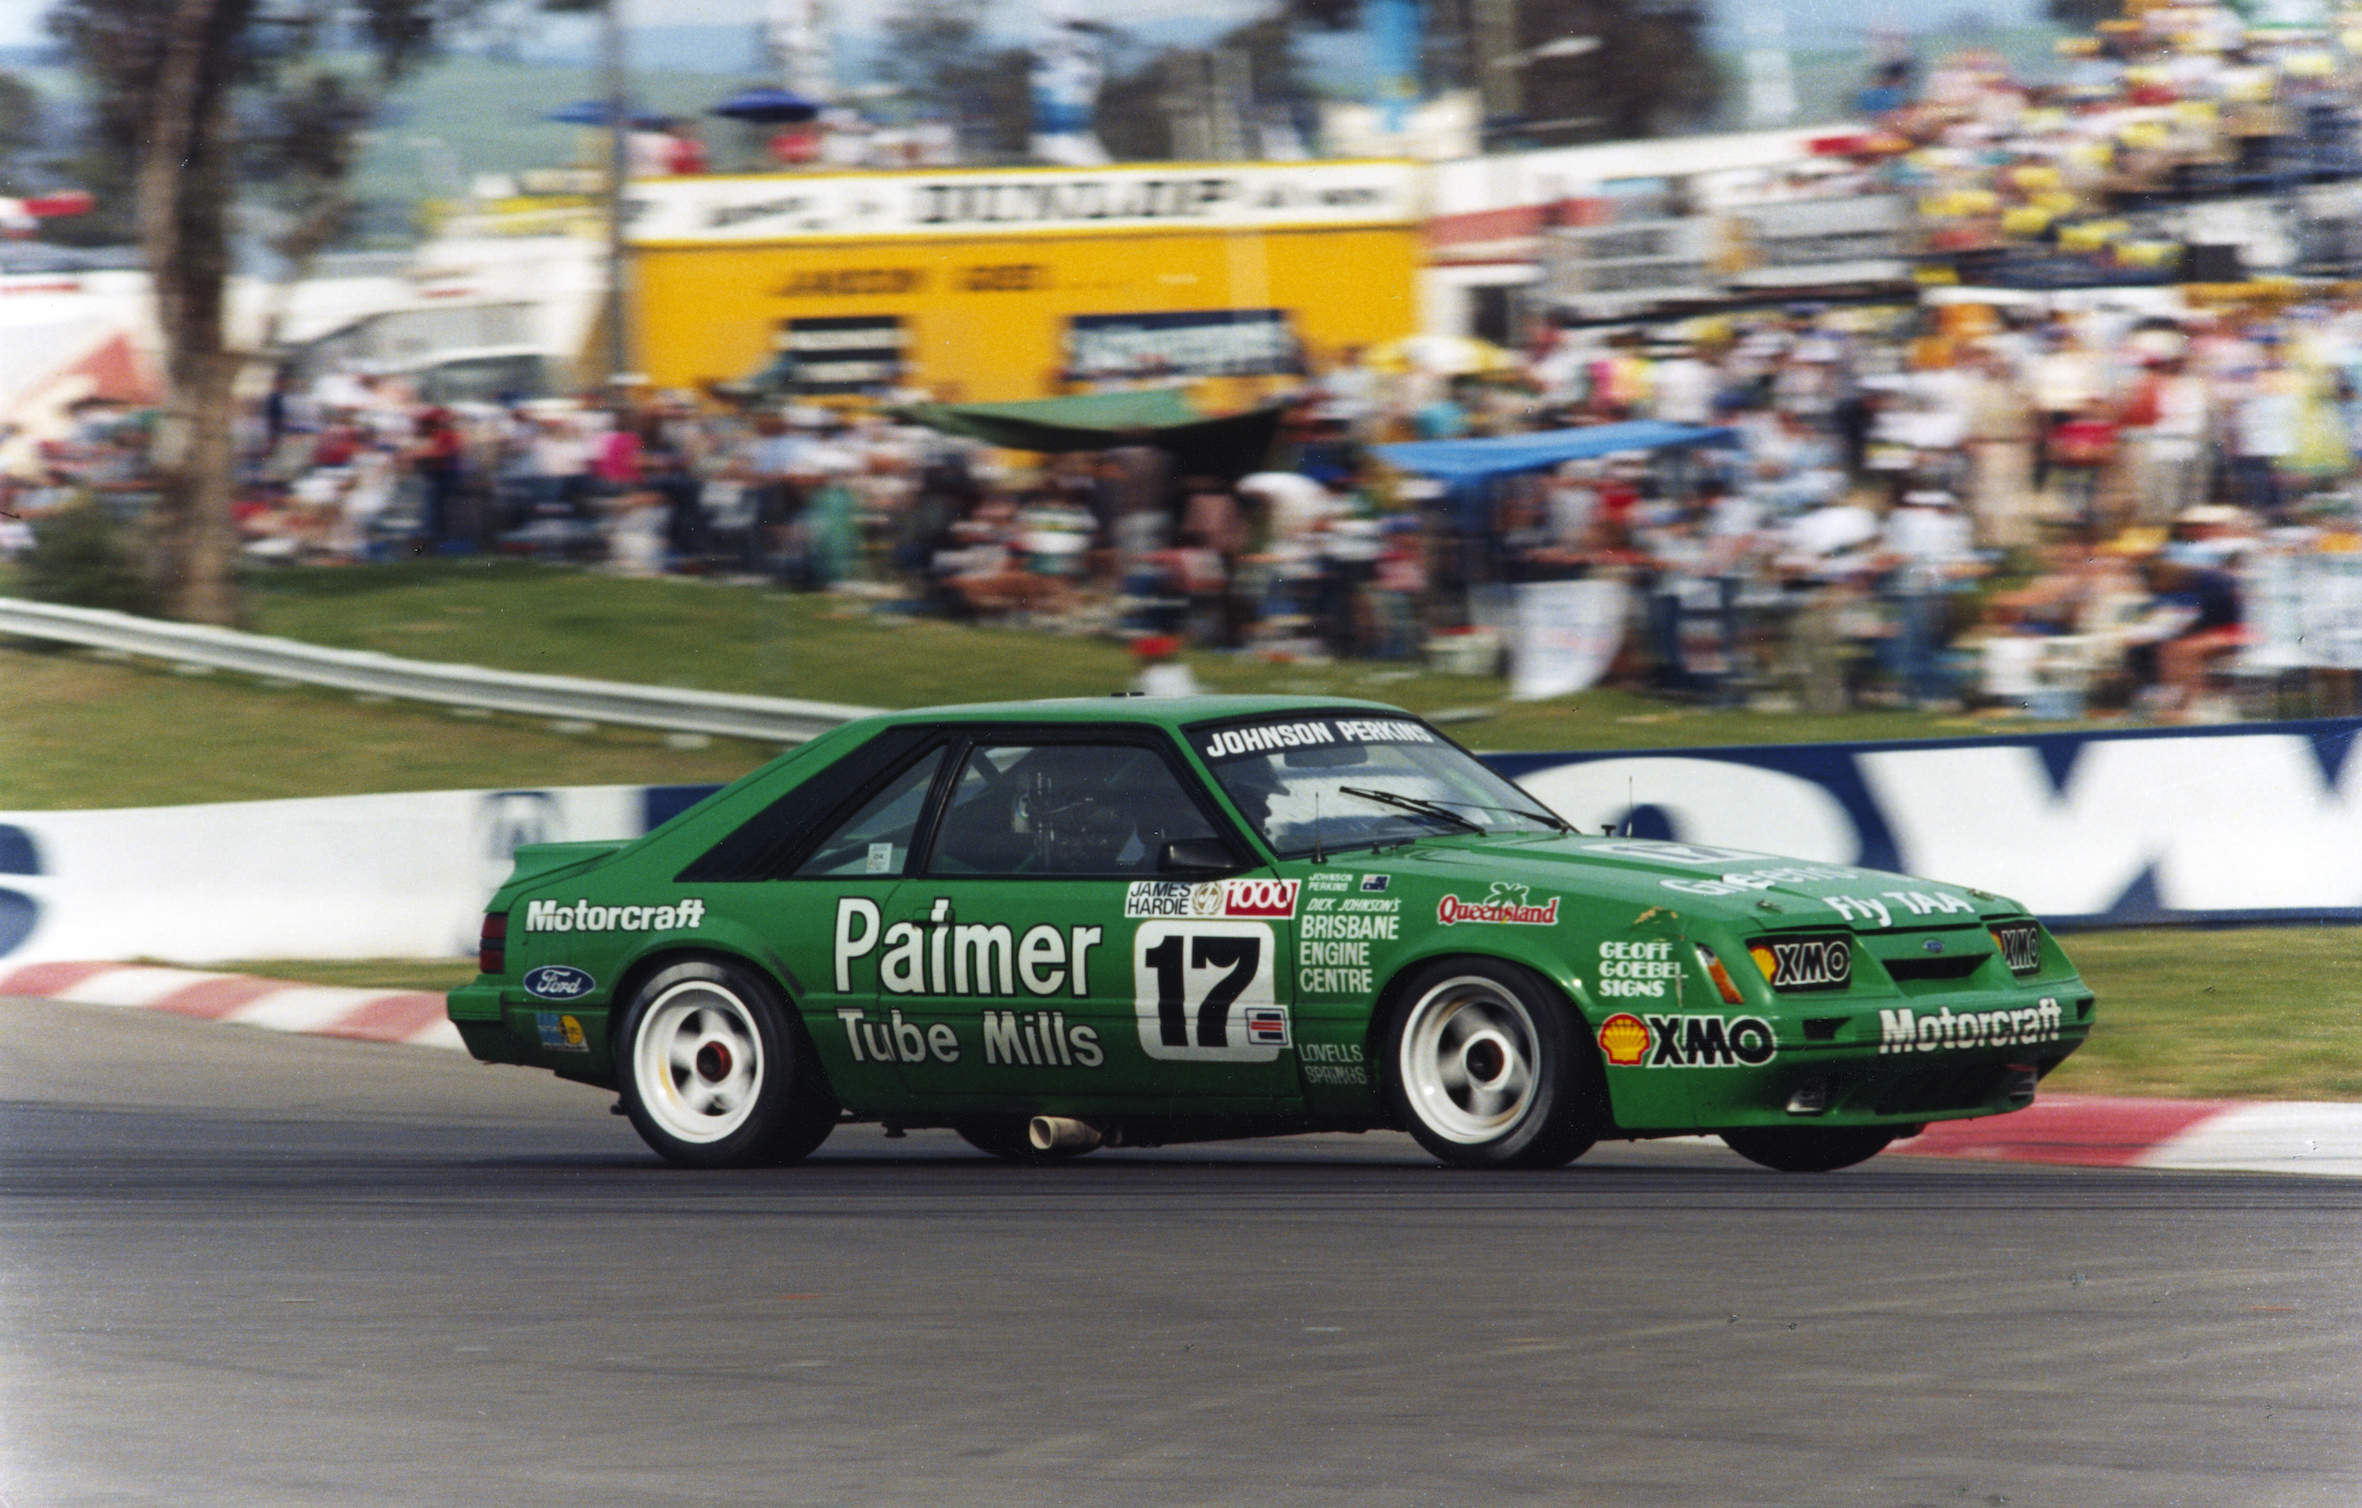 The last Mustang to compete in the ATCC